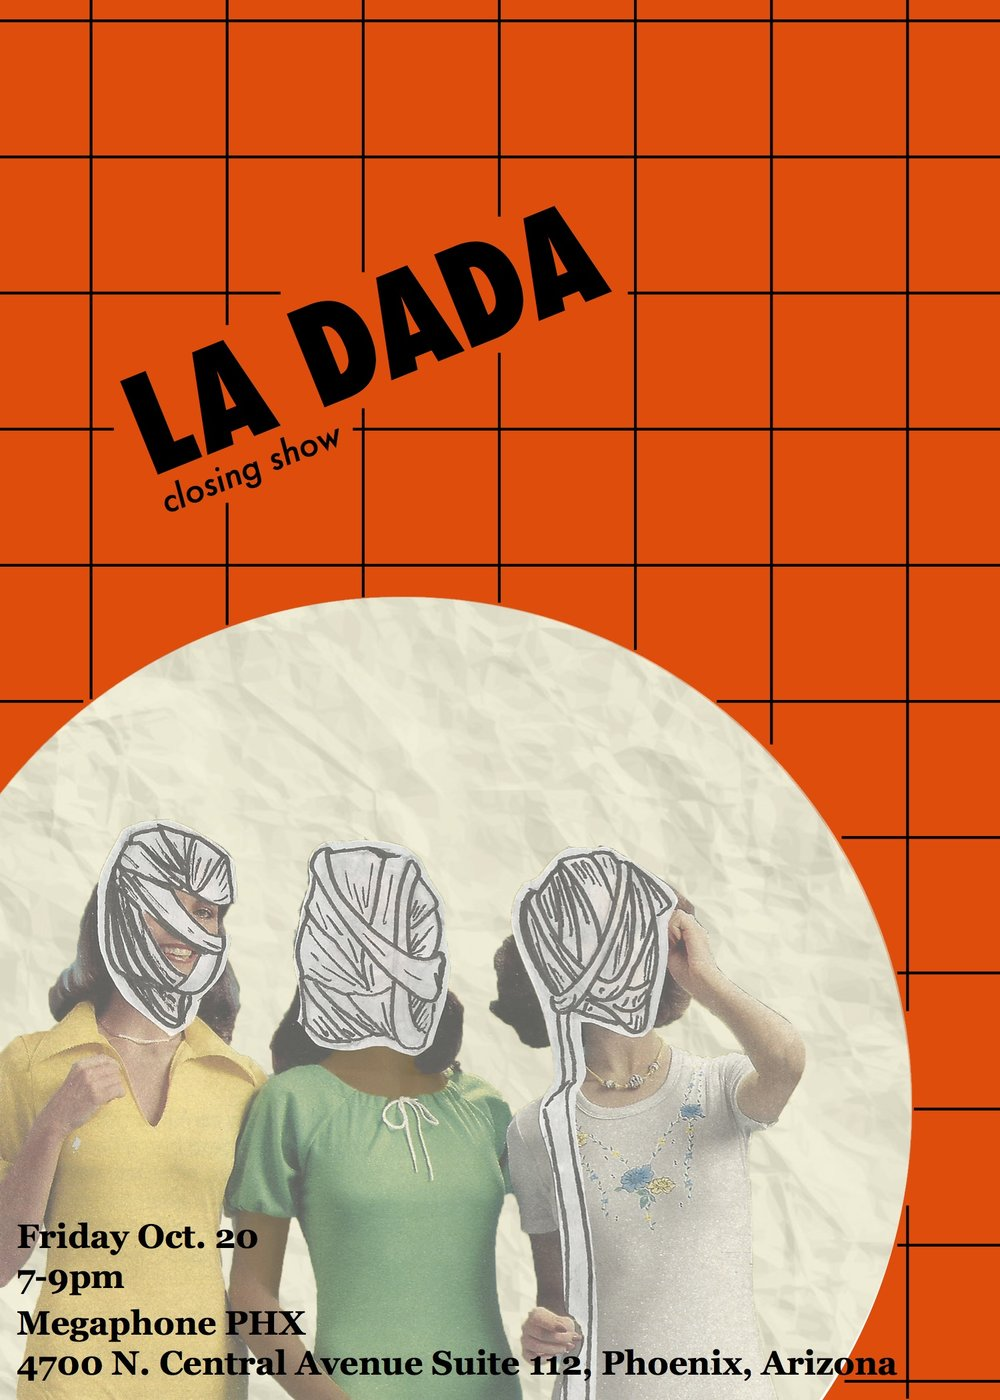 LA DADA closing show - Informative poster meant to promote Megaphone Gallery closing show for LA DADA. A night of celebration for artists who work in the medium of collage.